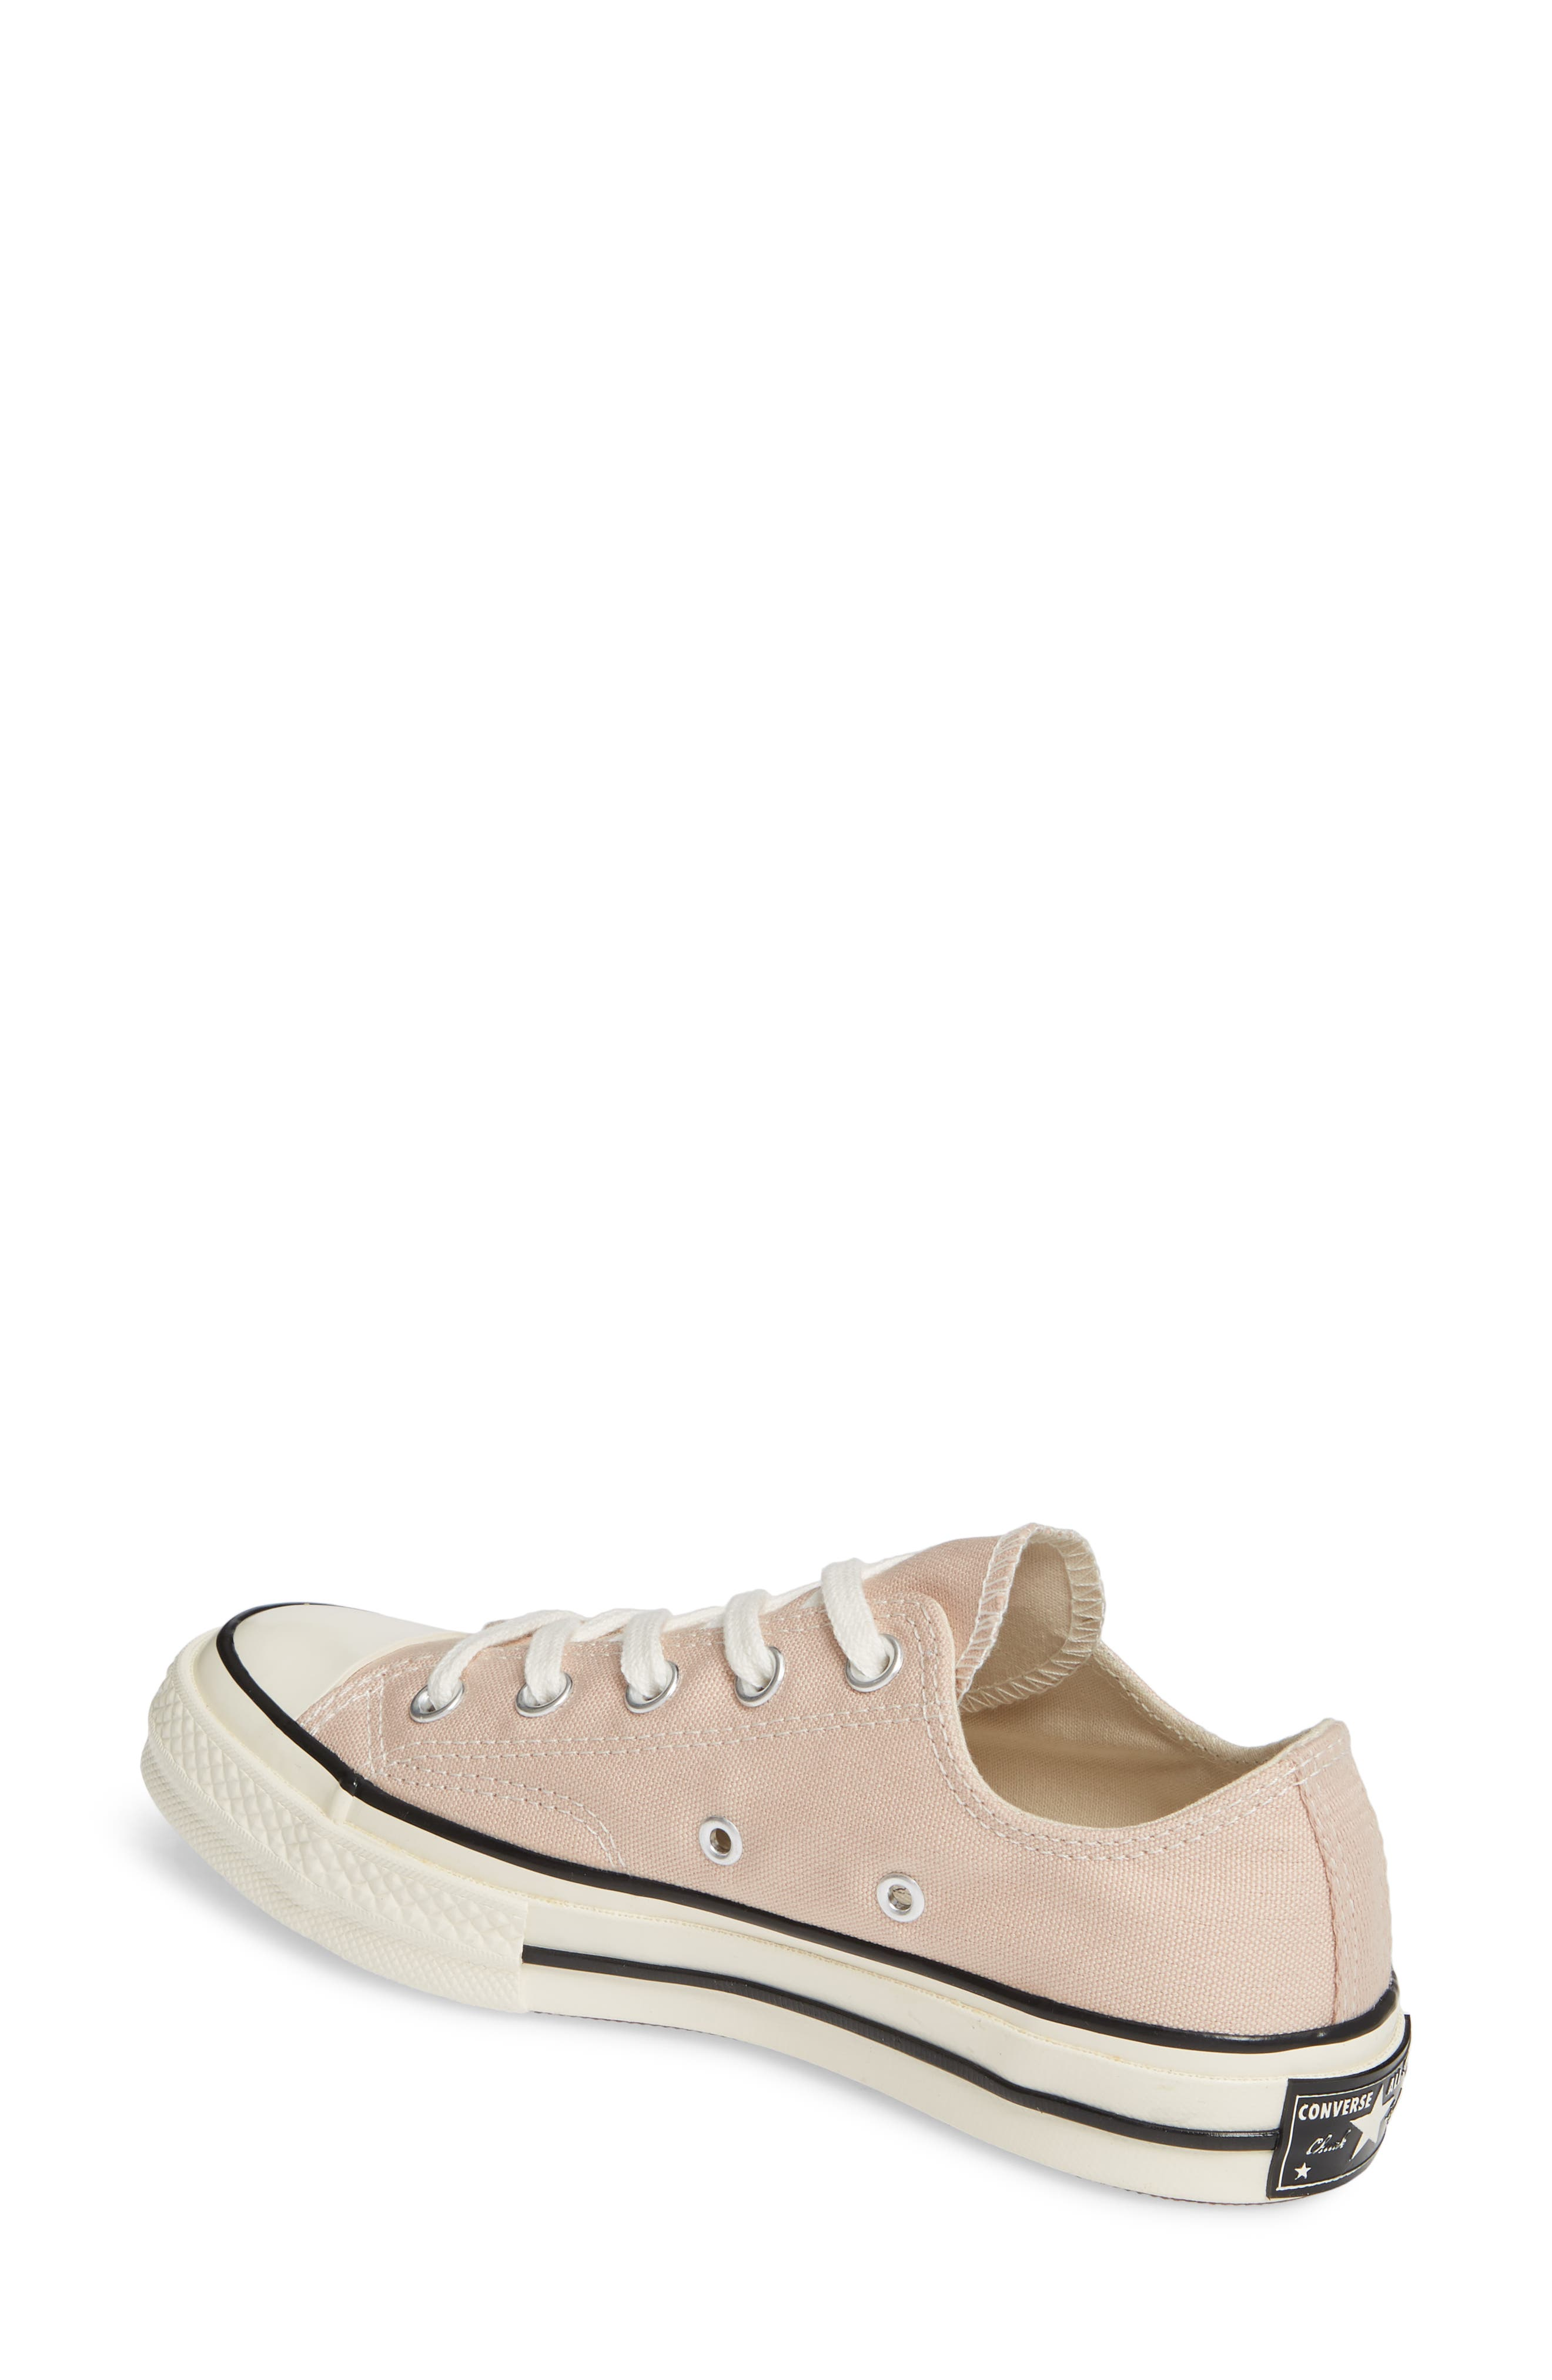 CONVERSE, Chuck Taylor<sup>®</sup> All Star<sup>®</sup> Chuck 70 Ox Sneaker, Alternate thumbnail 2, color, PARTICLE BEIGE/ BLACK/ EGRET